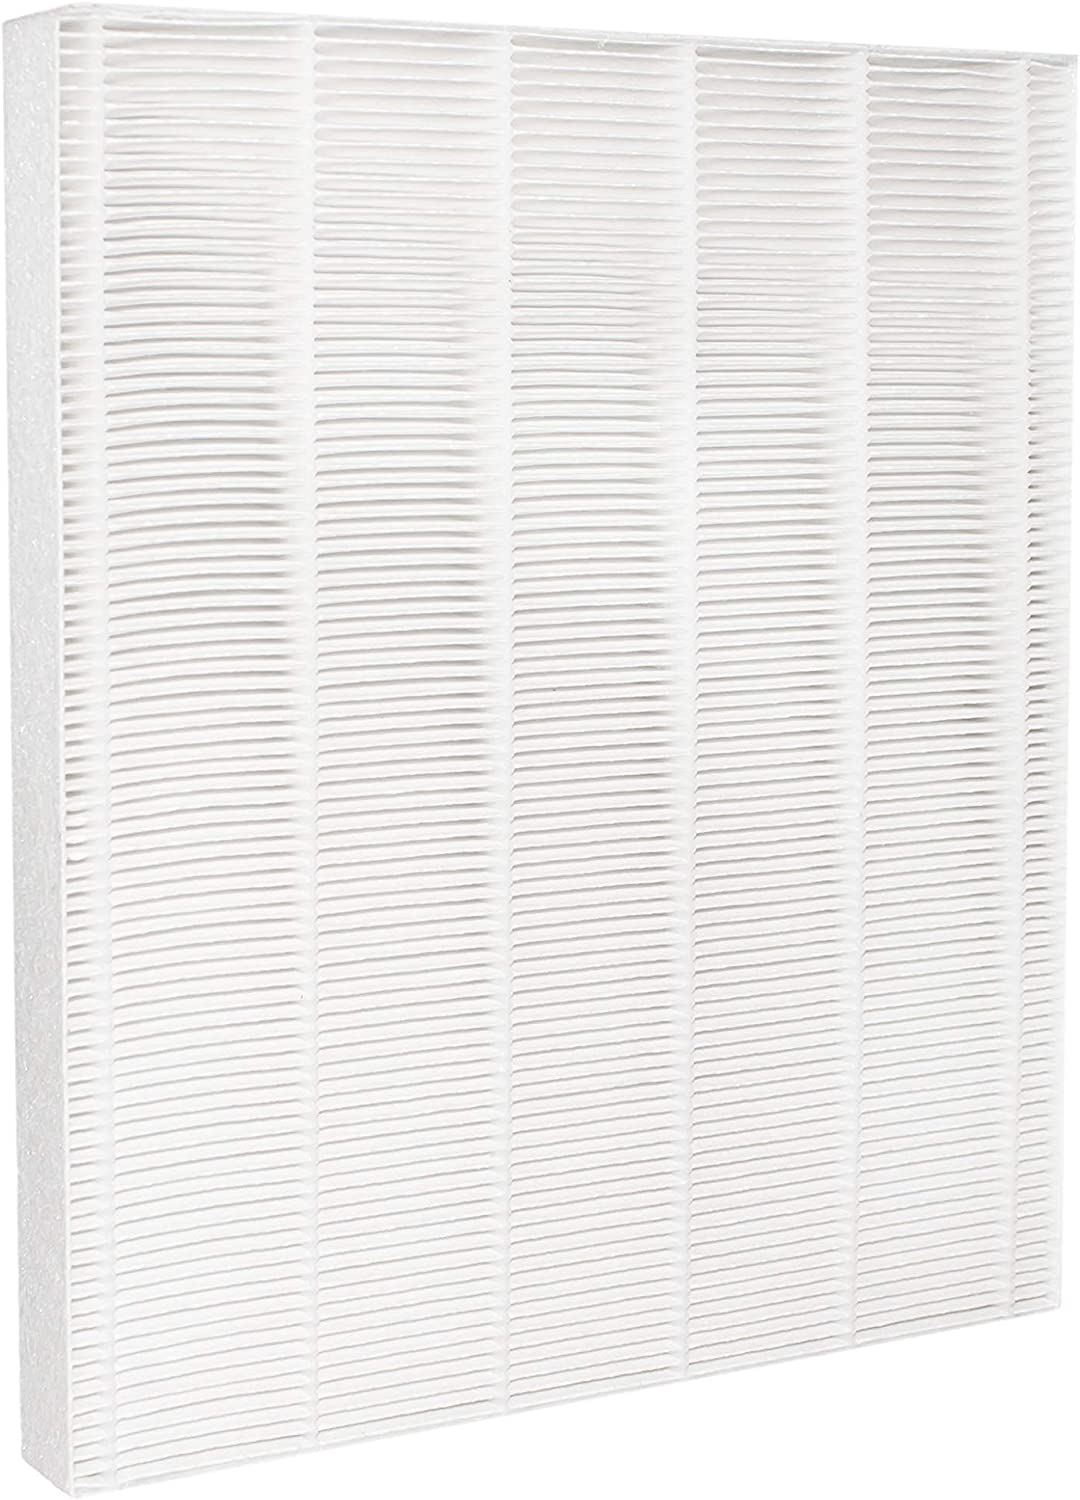 LifeSupplyUSA HEPA Max 71% OFF Filter Compatible with HF-230 Max 46% OFF Air Fellowes Pu